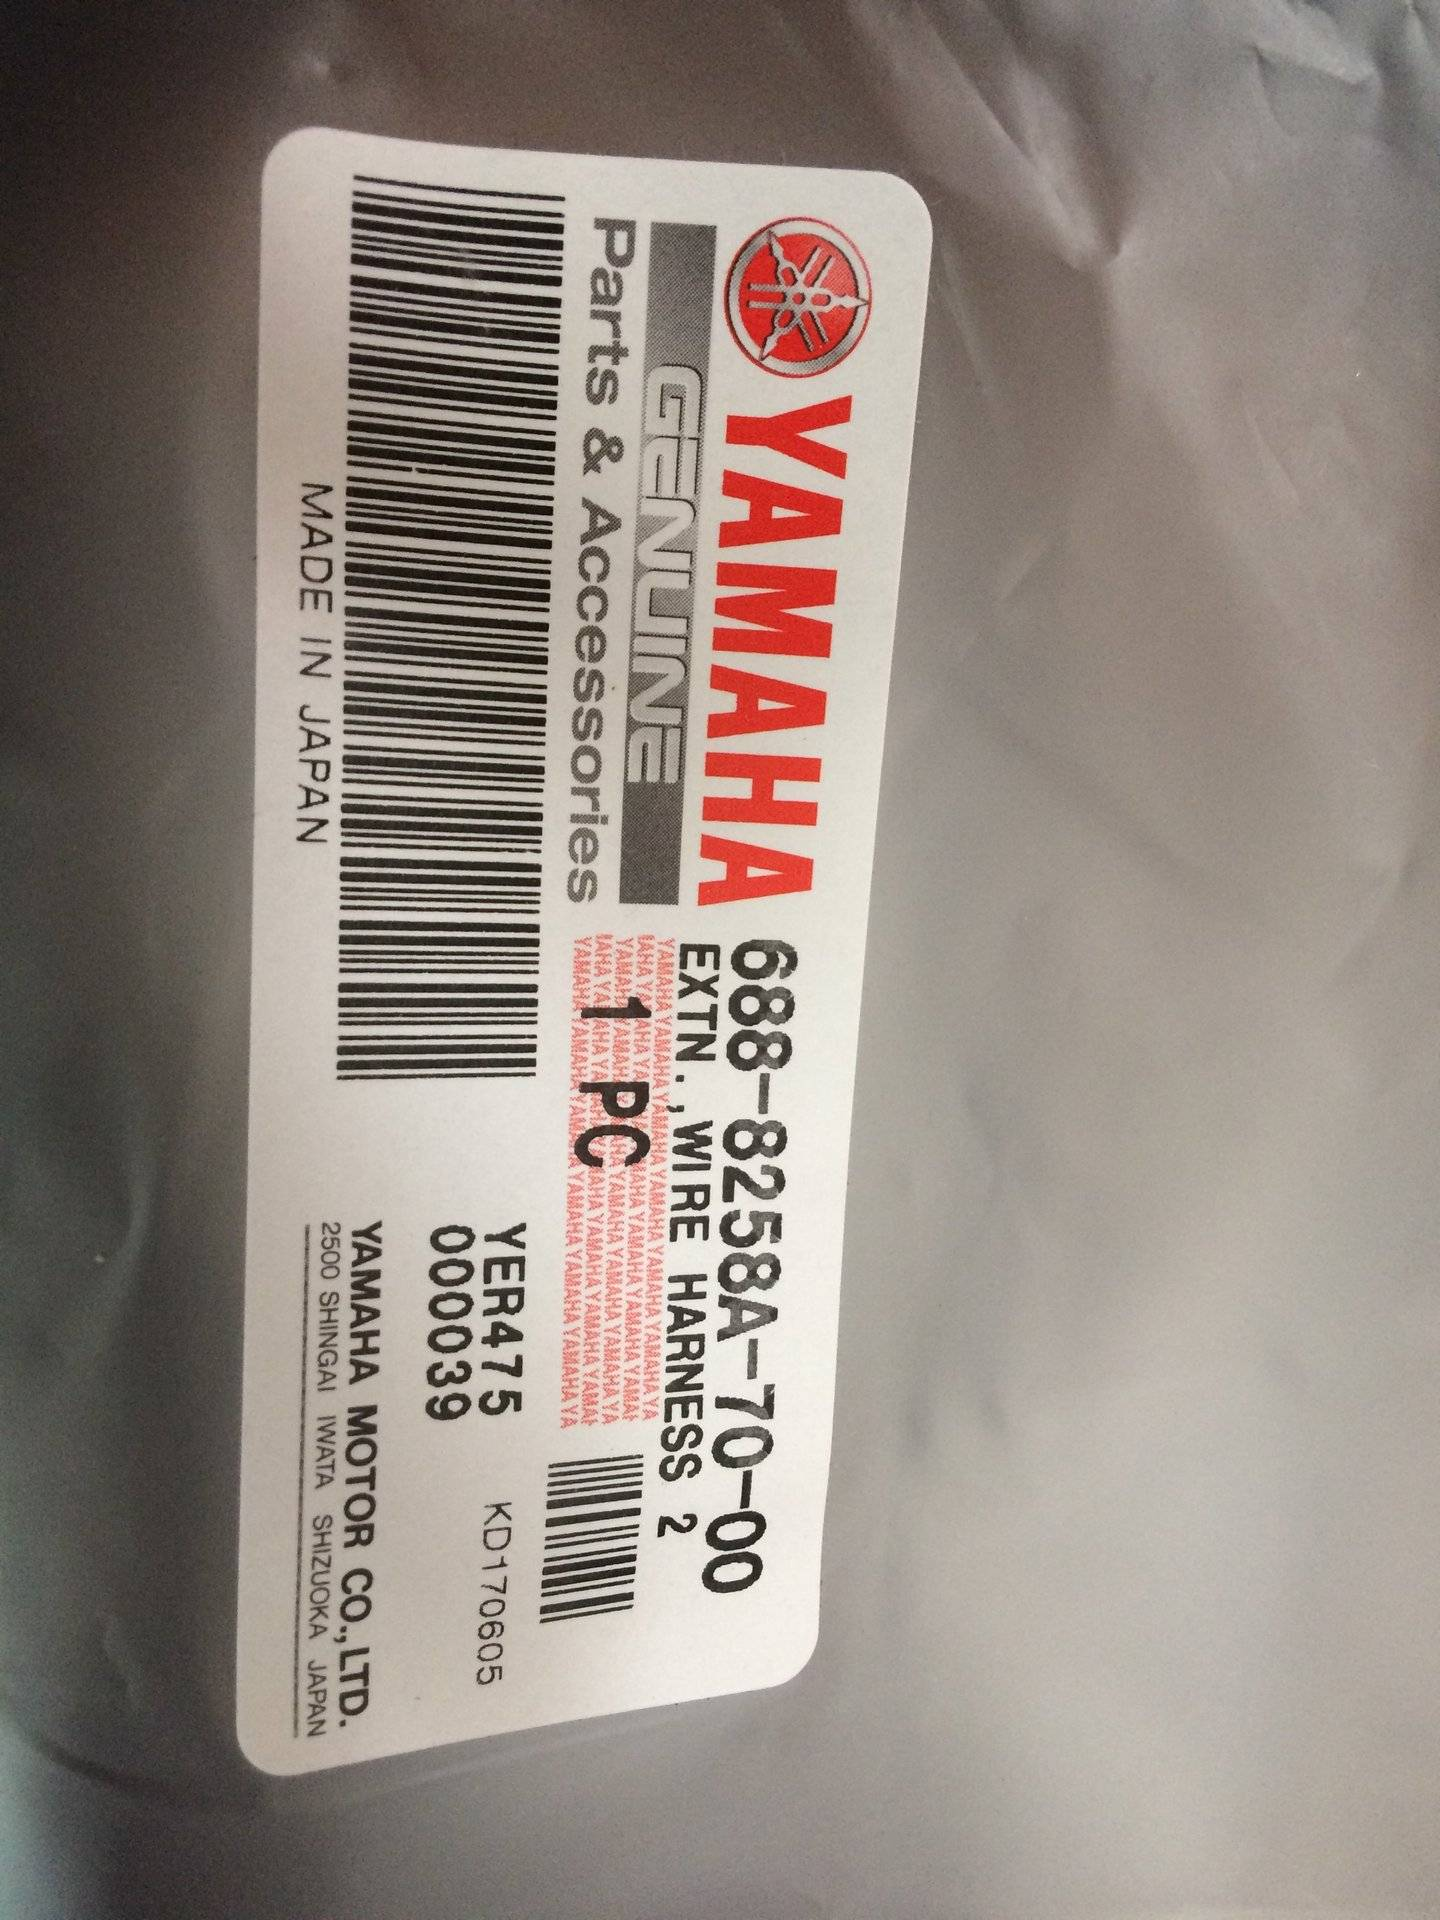 hight resolution of i have a brand new 10 pin 23 yamaha wire harness part number 688 8258a 70 00 this is the cable that connects the yamaha outboards to the key switch and